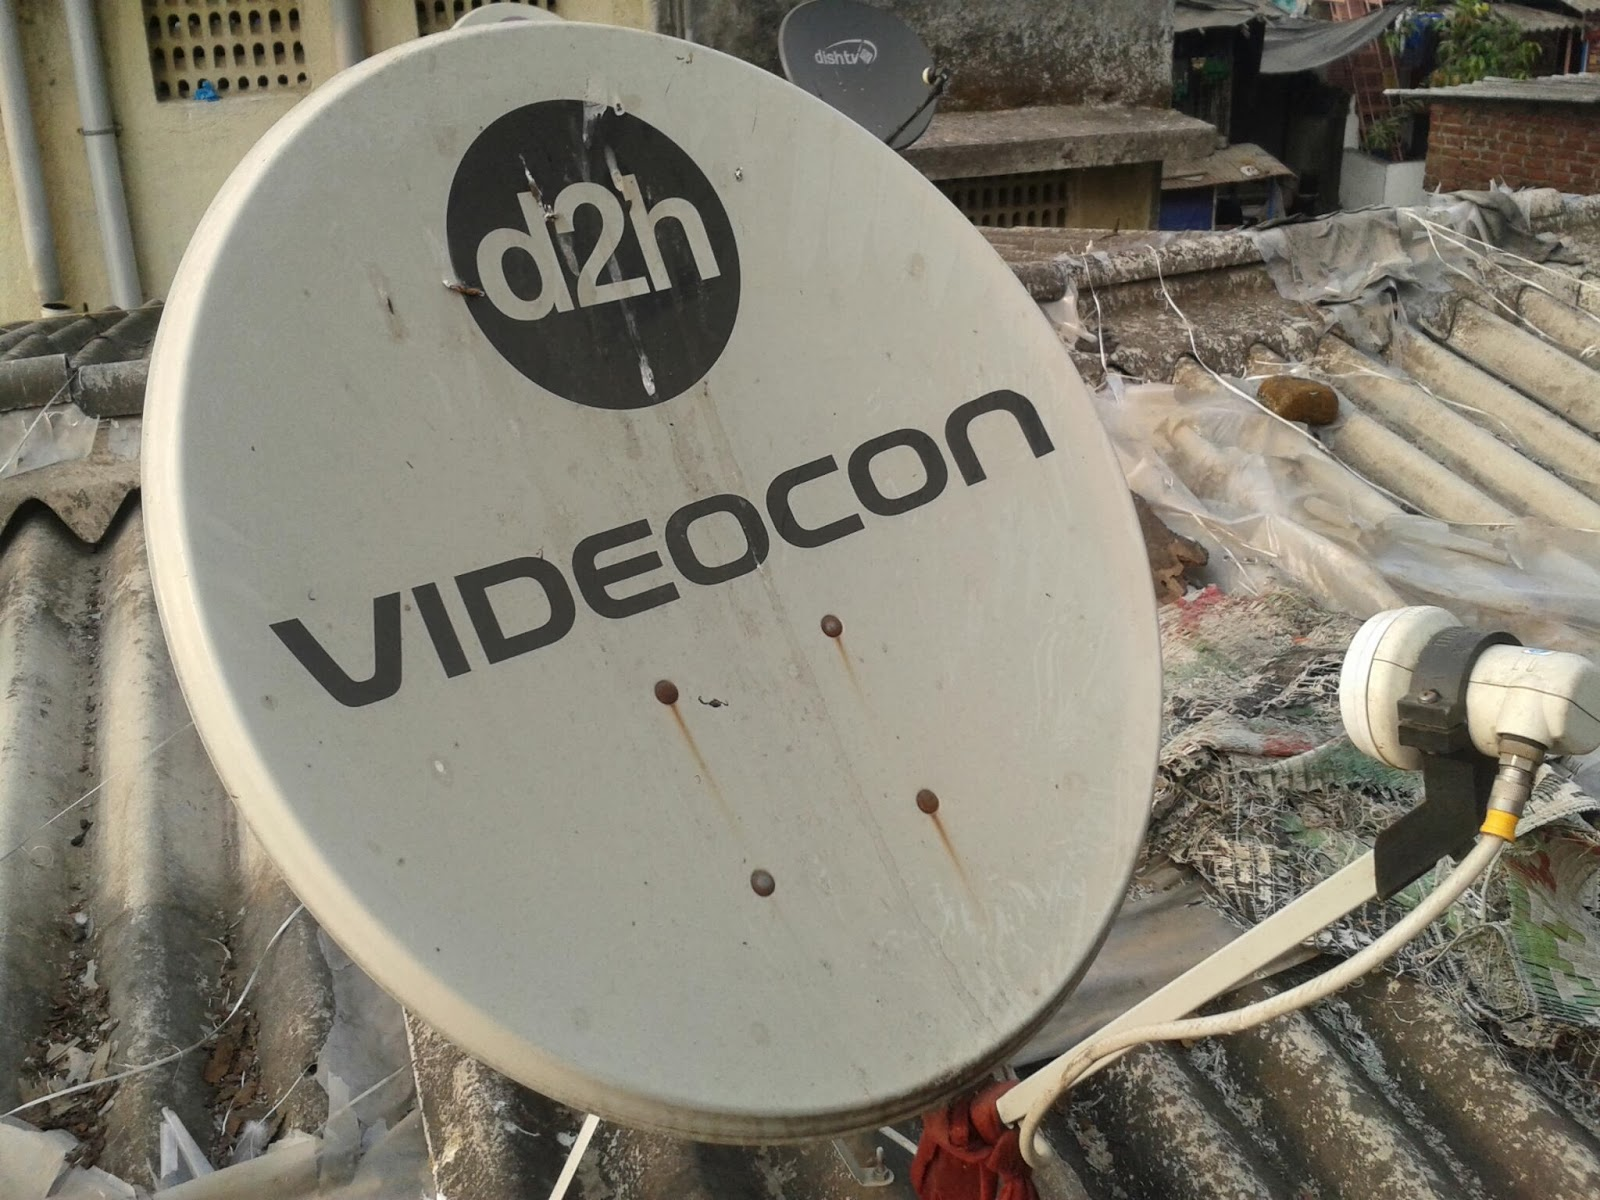 project report on videocon d2h D2h smart remote is a smart mobile app which connects with your videocon d2h set top box either through bluetooth or wi-fi please note that the read more d2h smart remote is a smart mobile app which connects with your videocon d2h set top box either through bluetooth or wi-fi please note that .